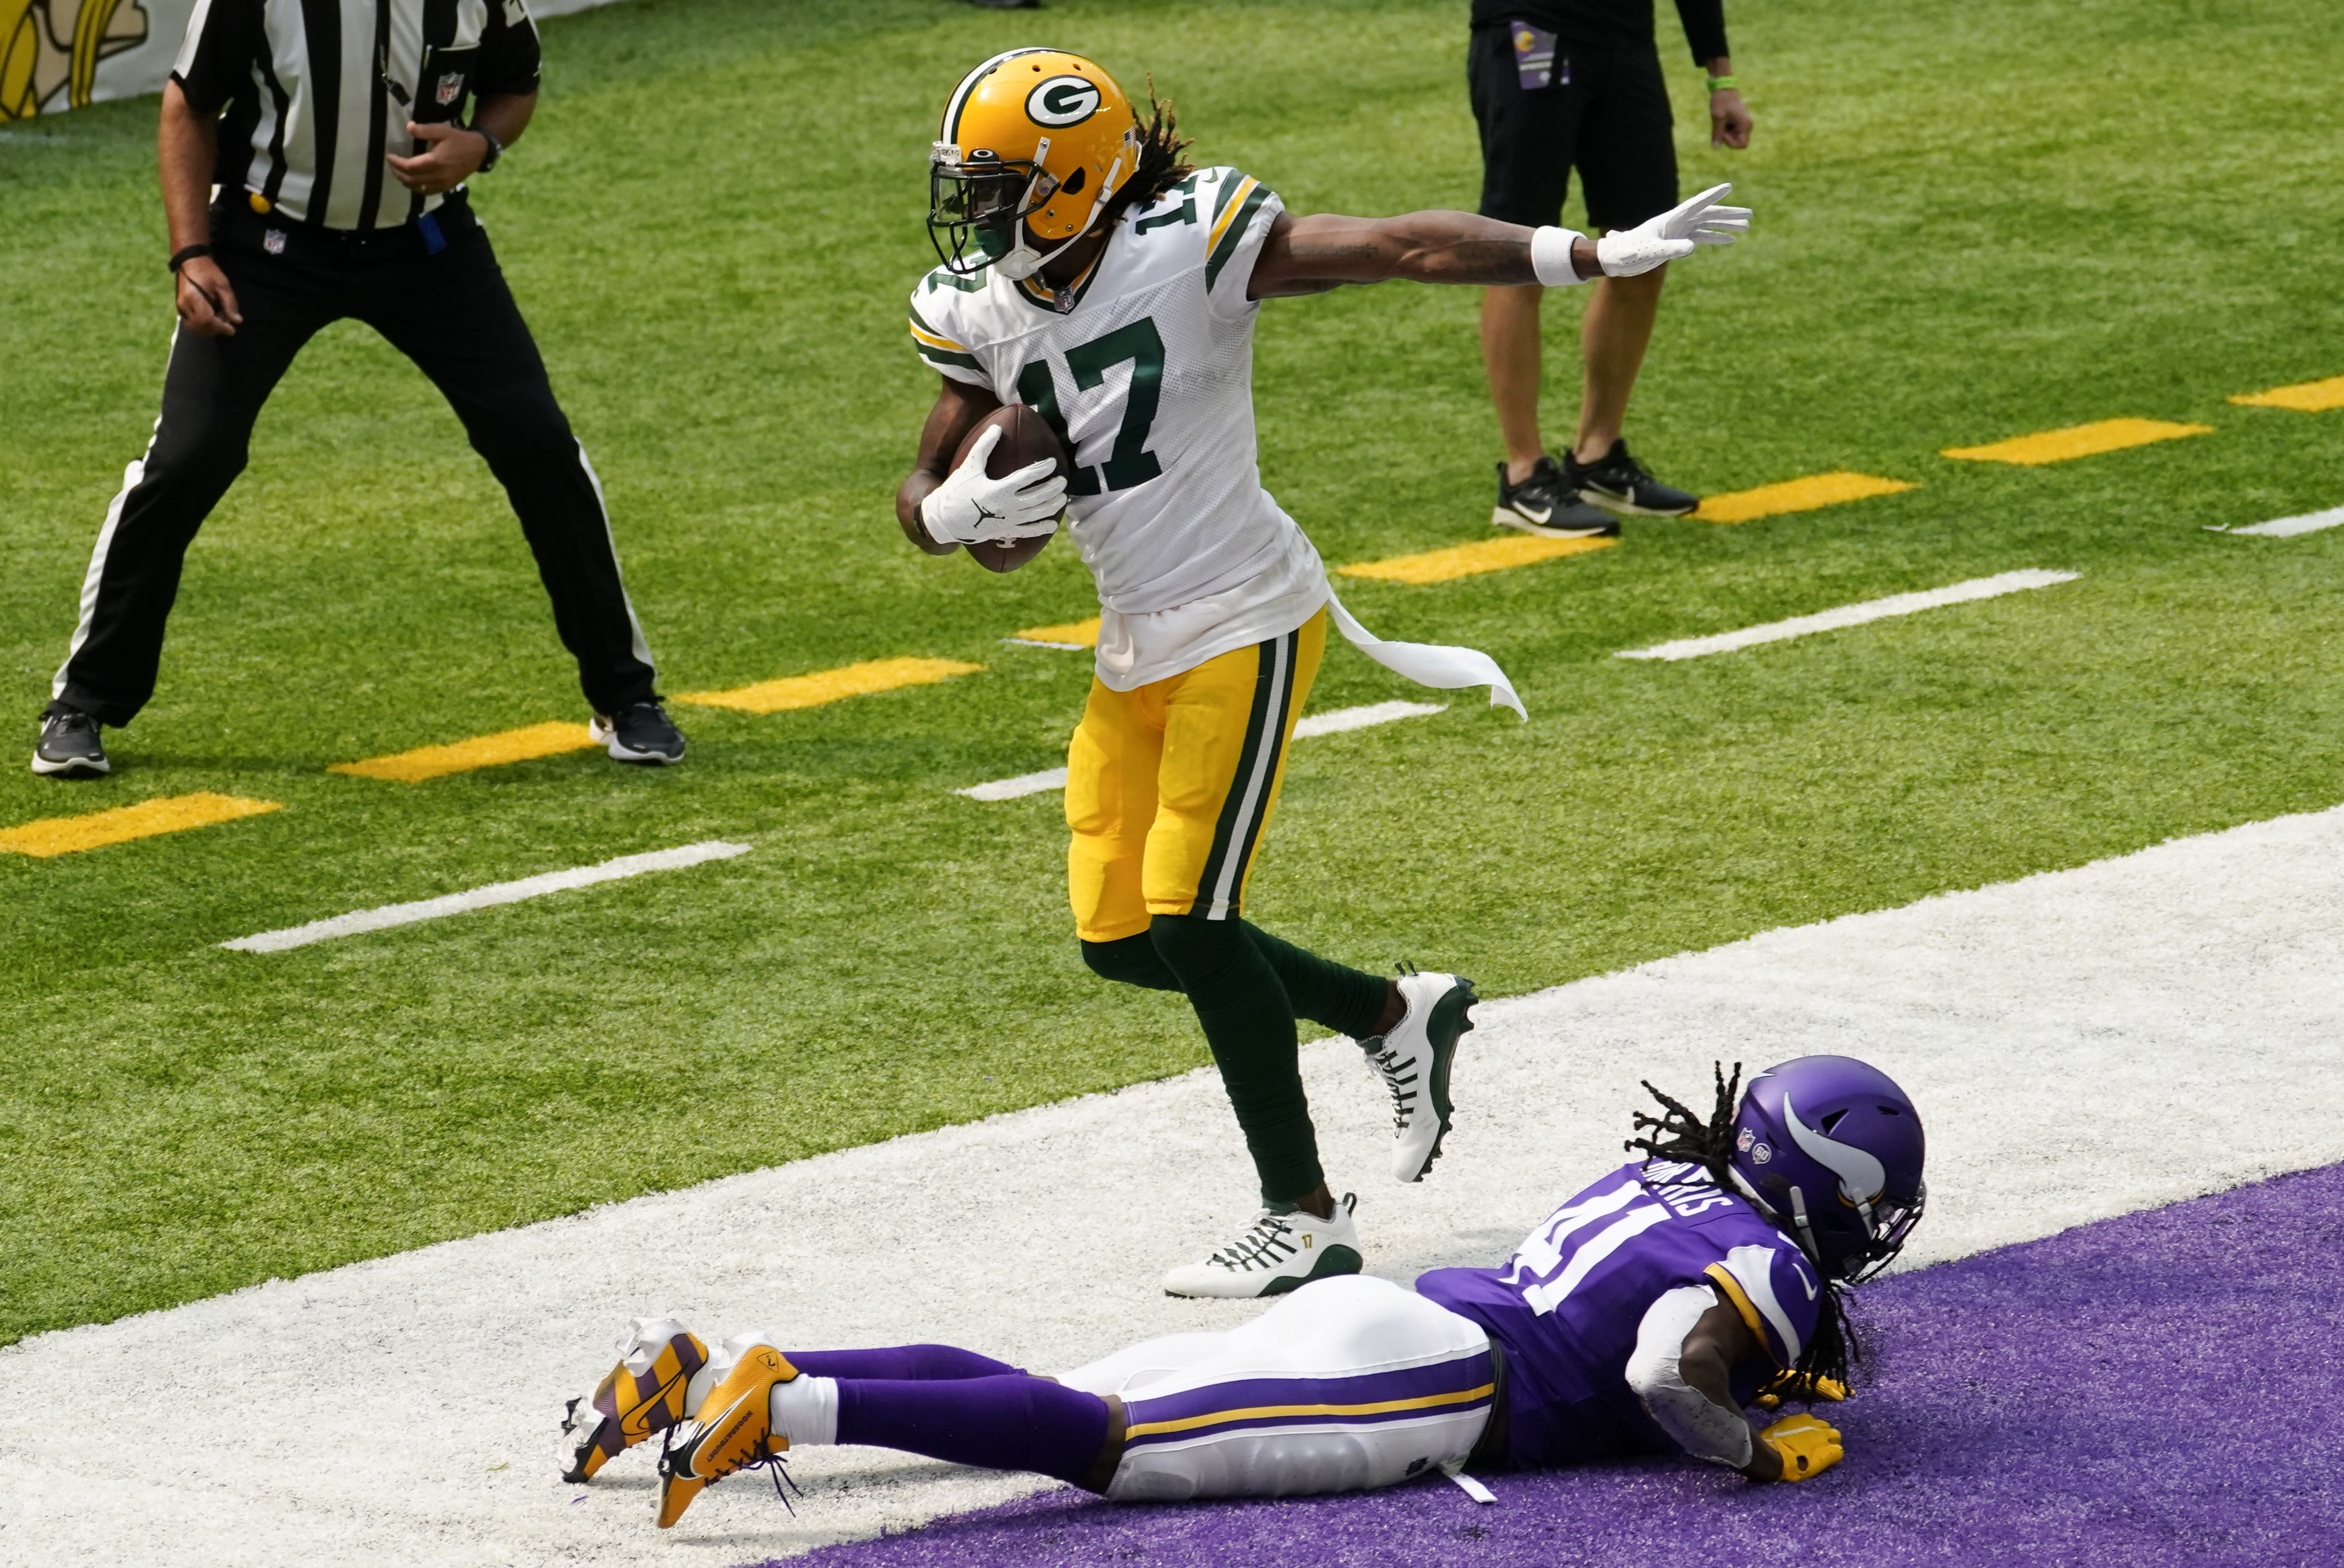 Green Bay Packers wide receiver Davante Adams (17) catches a 24-yard touchdown pass over Minnesota Vikings defensive back Anthony Harris during the first half of an NFL football game, Sunday, Sept. 13, 2020, in Minneapolis. (AP Photo/Jim Mone)